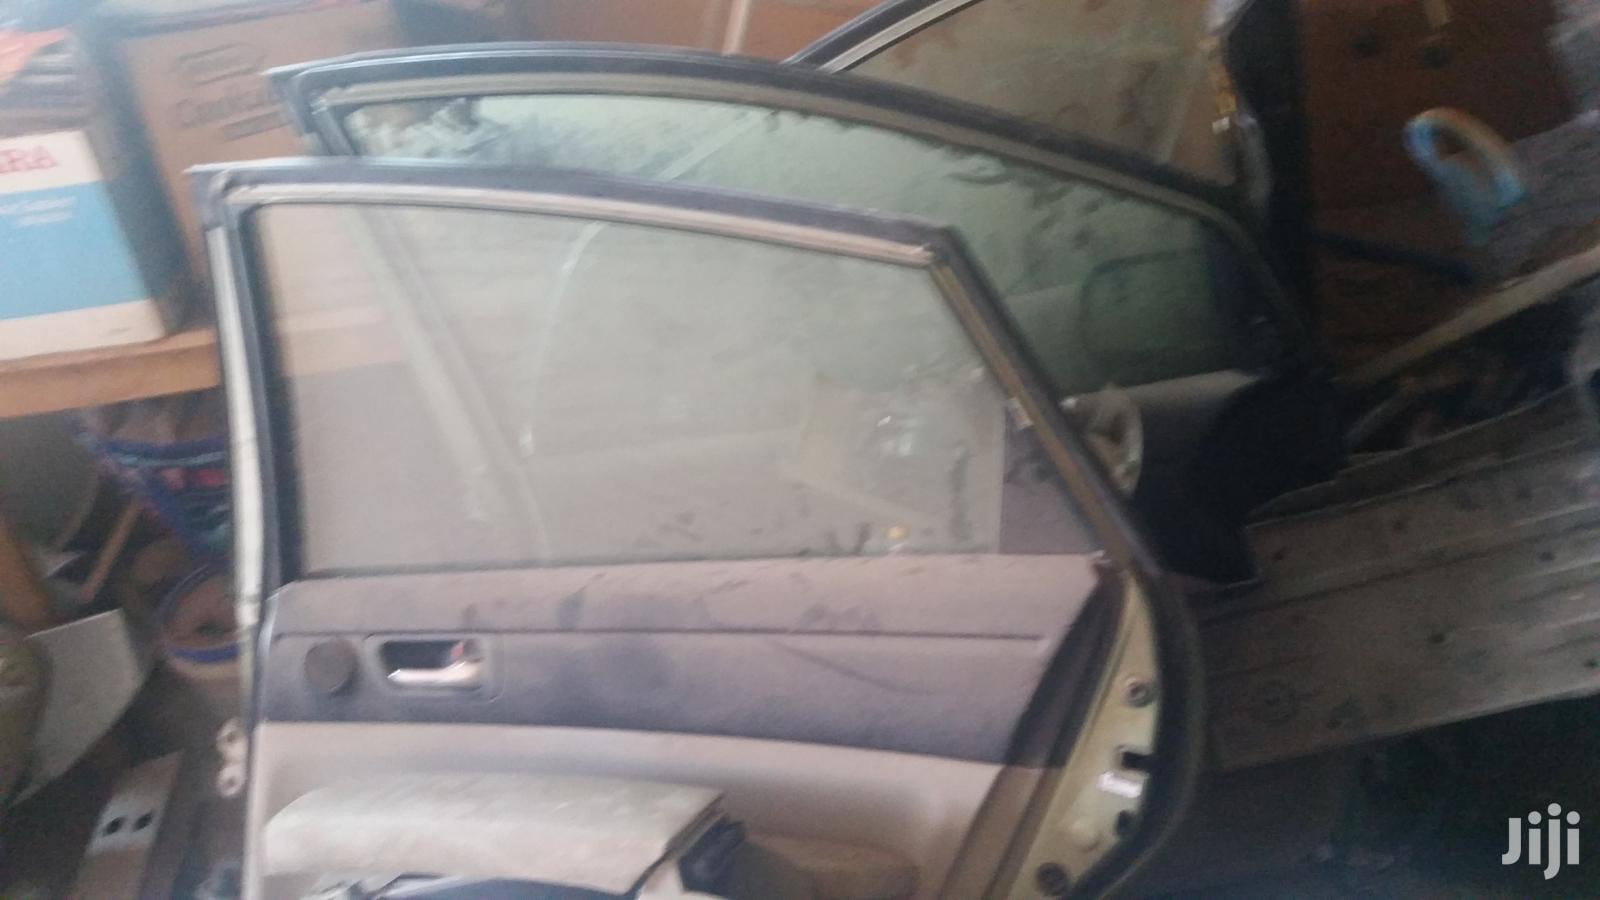 Car Doors And Other Parts For Toyota Prius | Vehicle Parts & Accessories for sale in Ga East Municipal, Greater Accra, Ghana